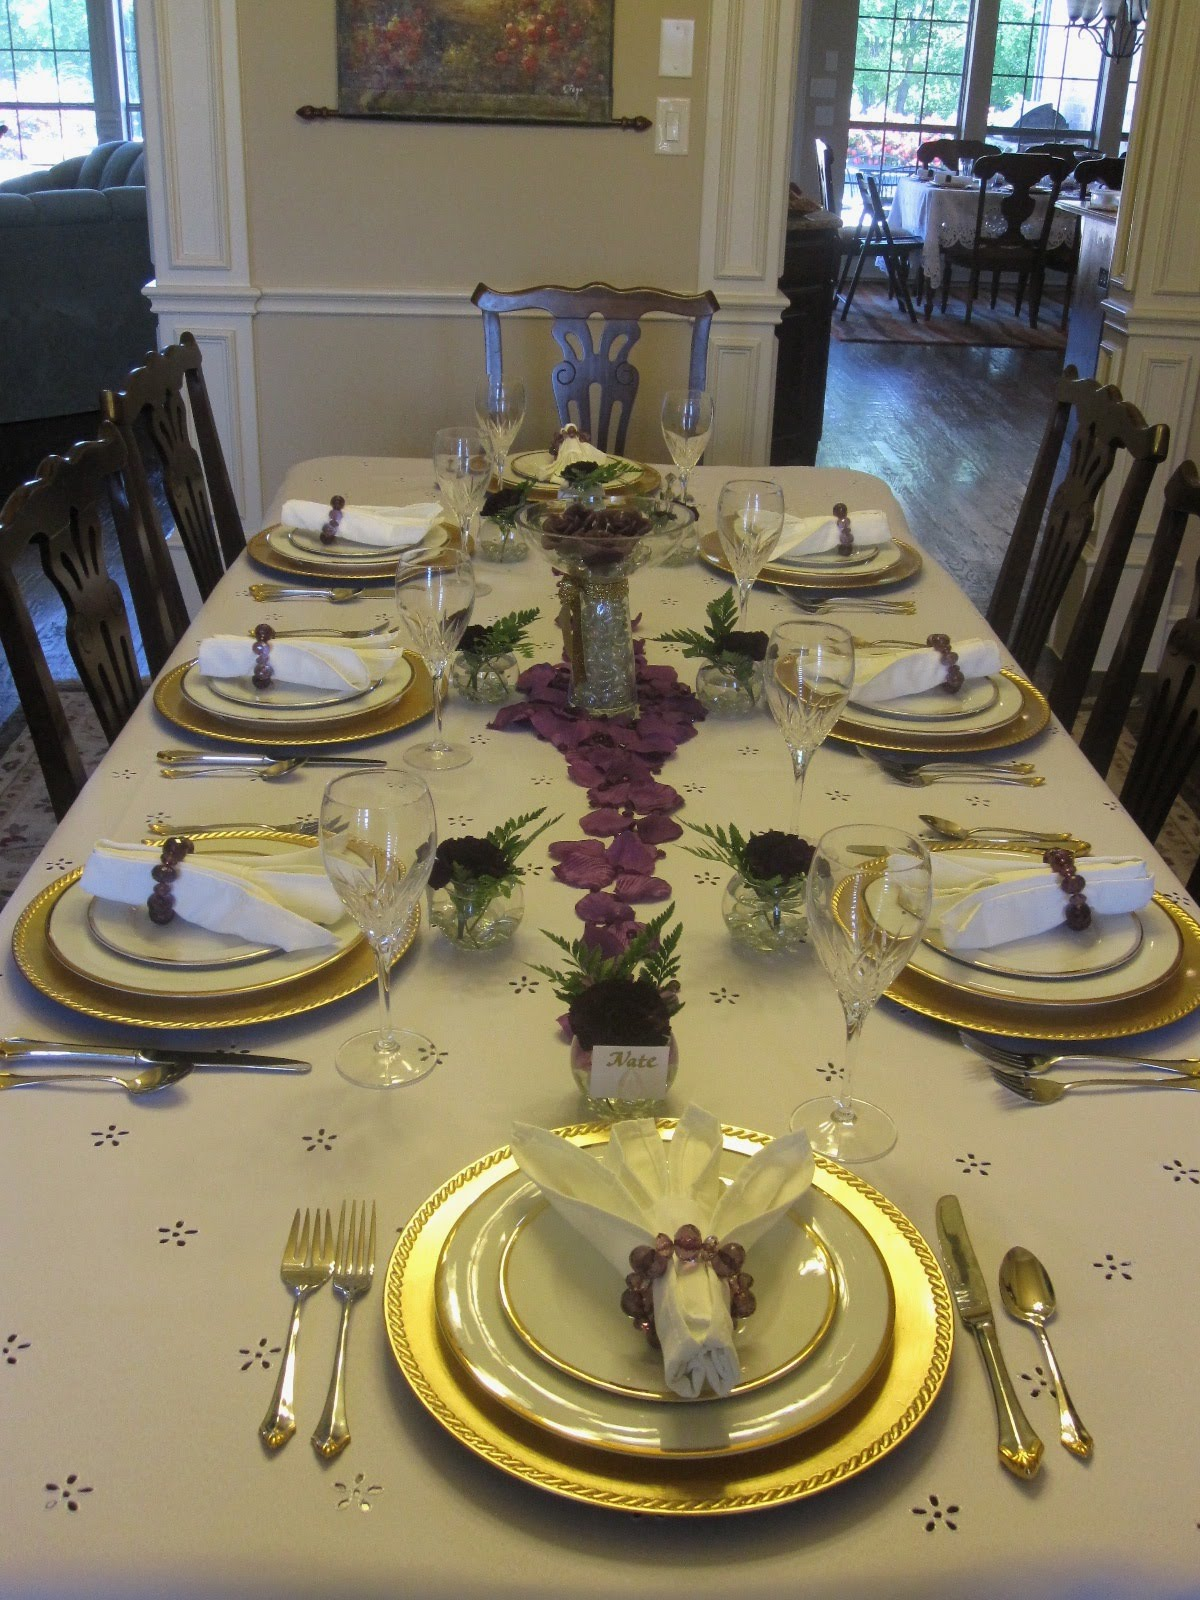 Creative hospitality decorative dinner table setting ideas for Table place setting